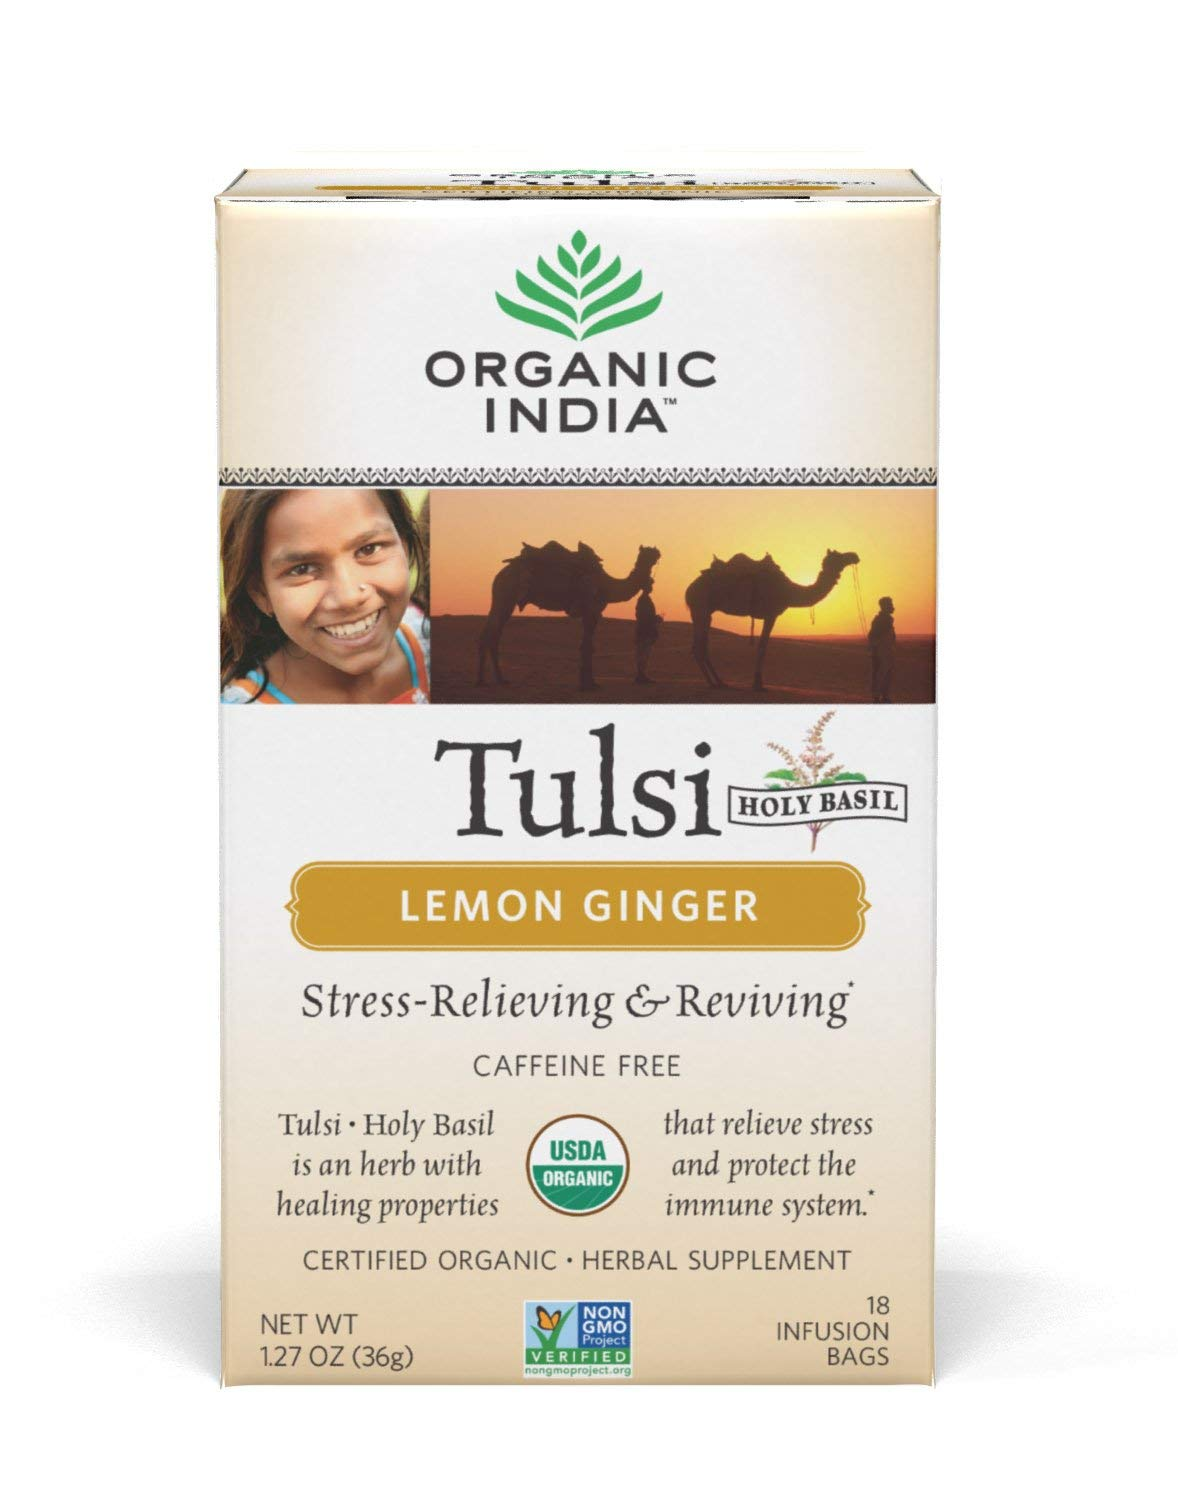 organic india tulsi lemon ginger